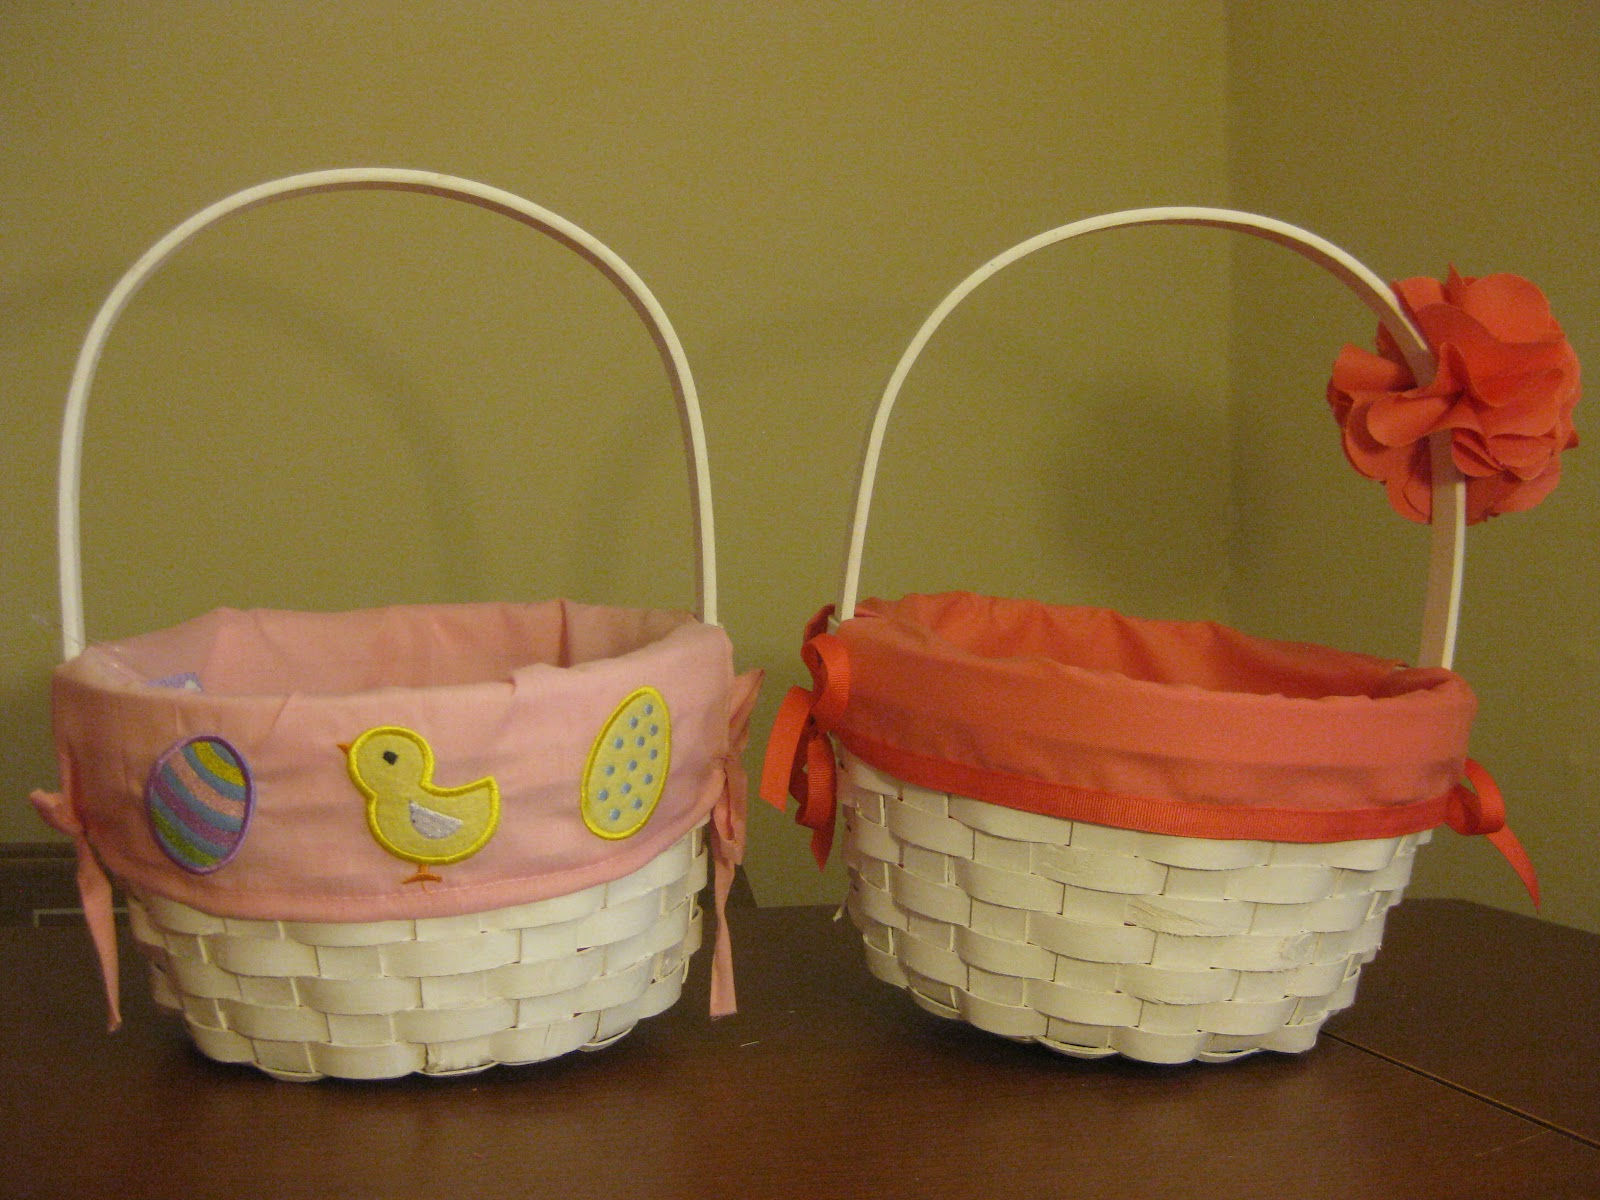 Bonnieprojects Flower Girl Baskets With Exchangable Liners